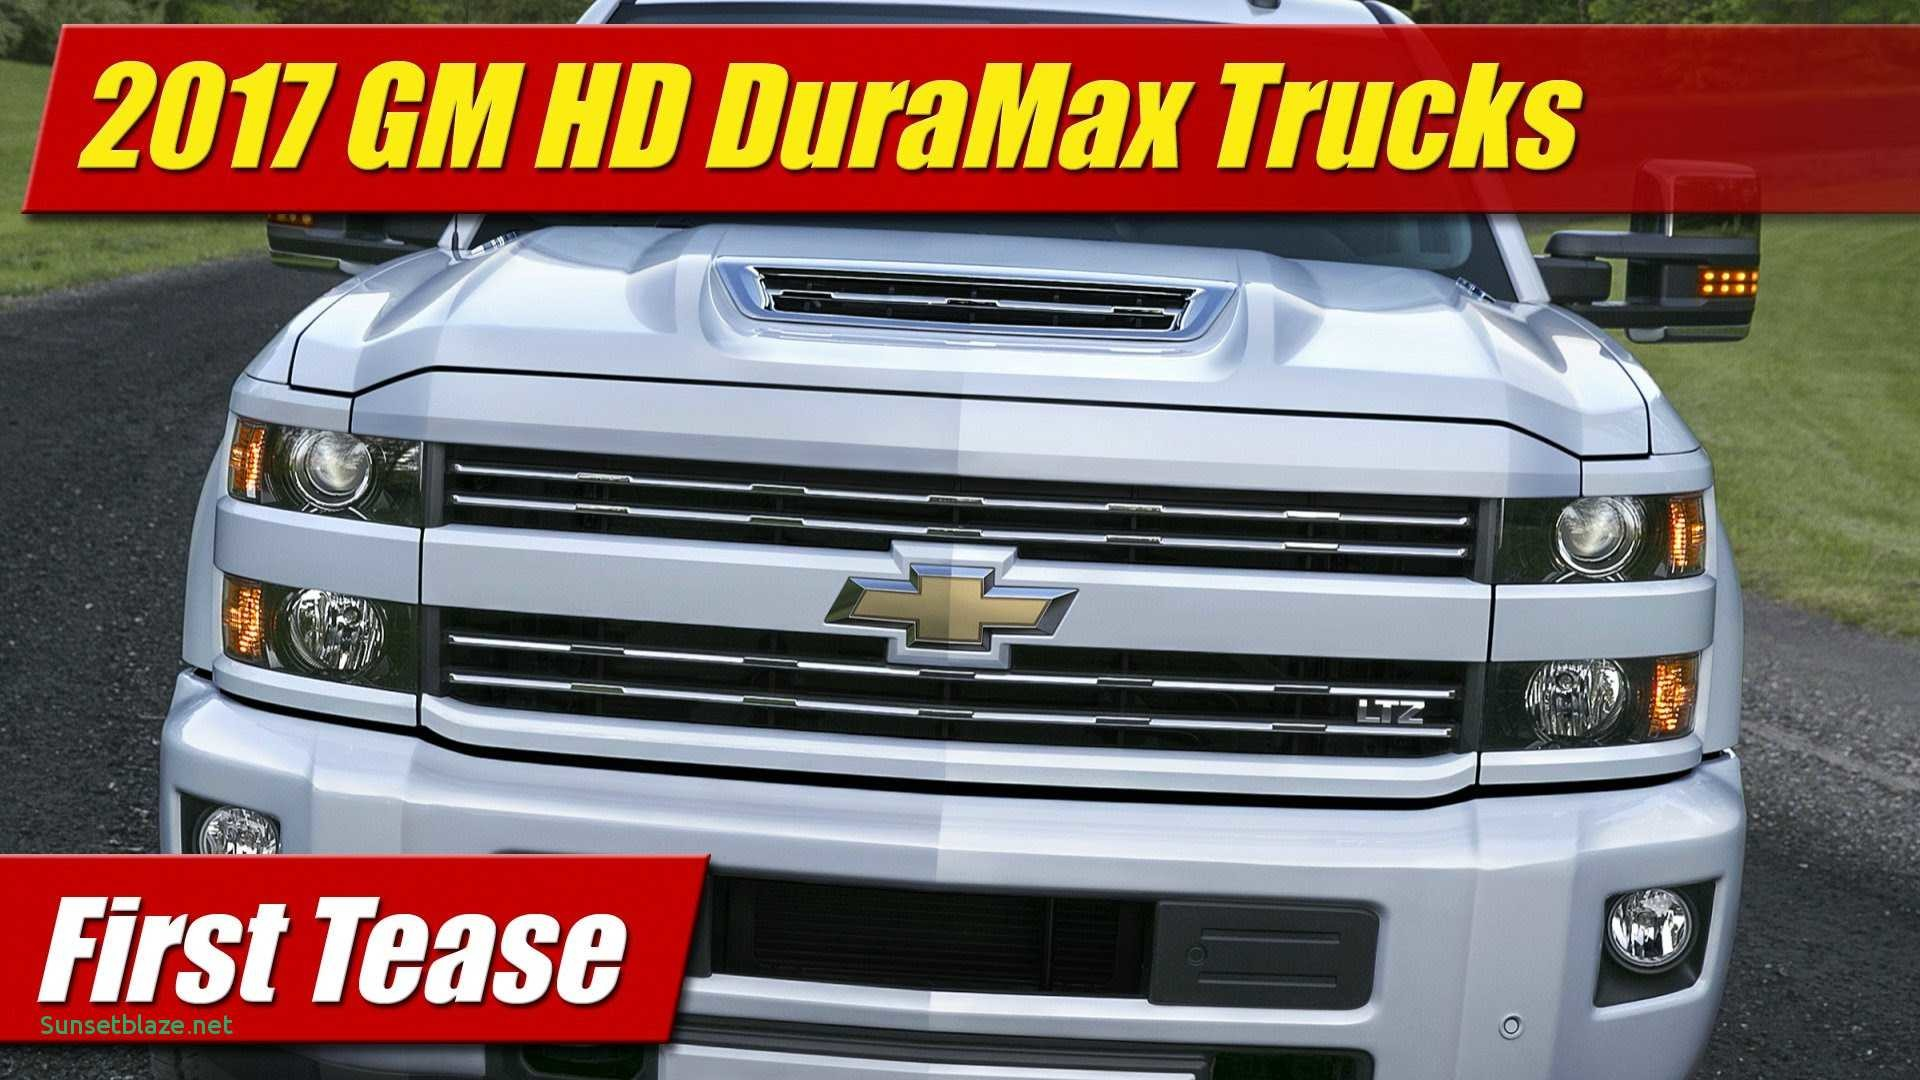 1920x1080 2017 Chevrolet & Gmc Hd Duramax Trucks First Tease Fresh Of 2018 Chevy  2500hd Duramax